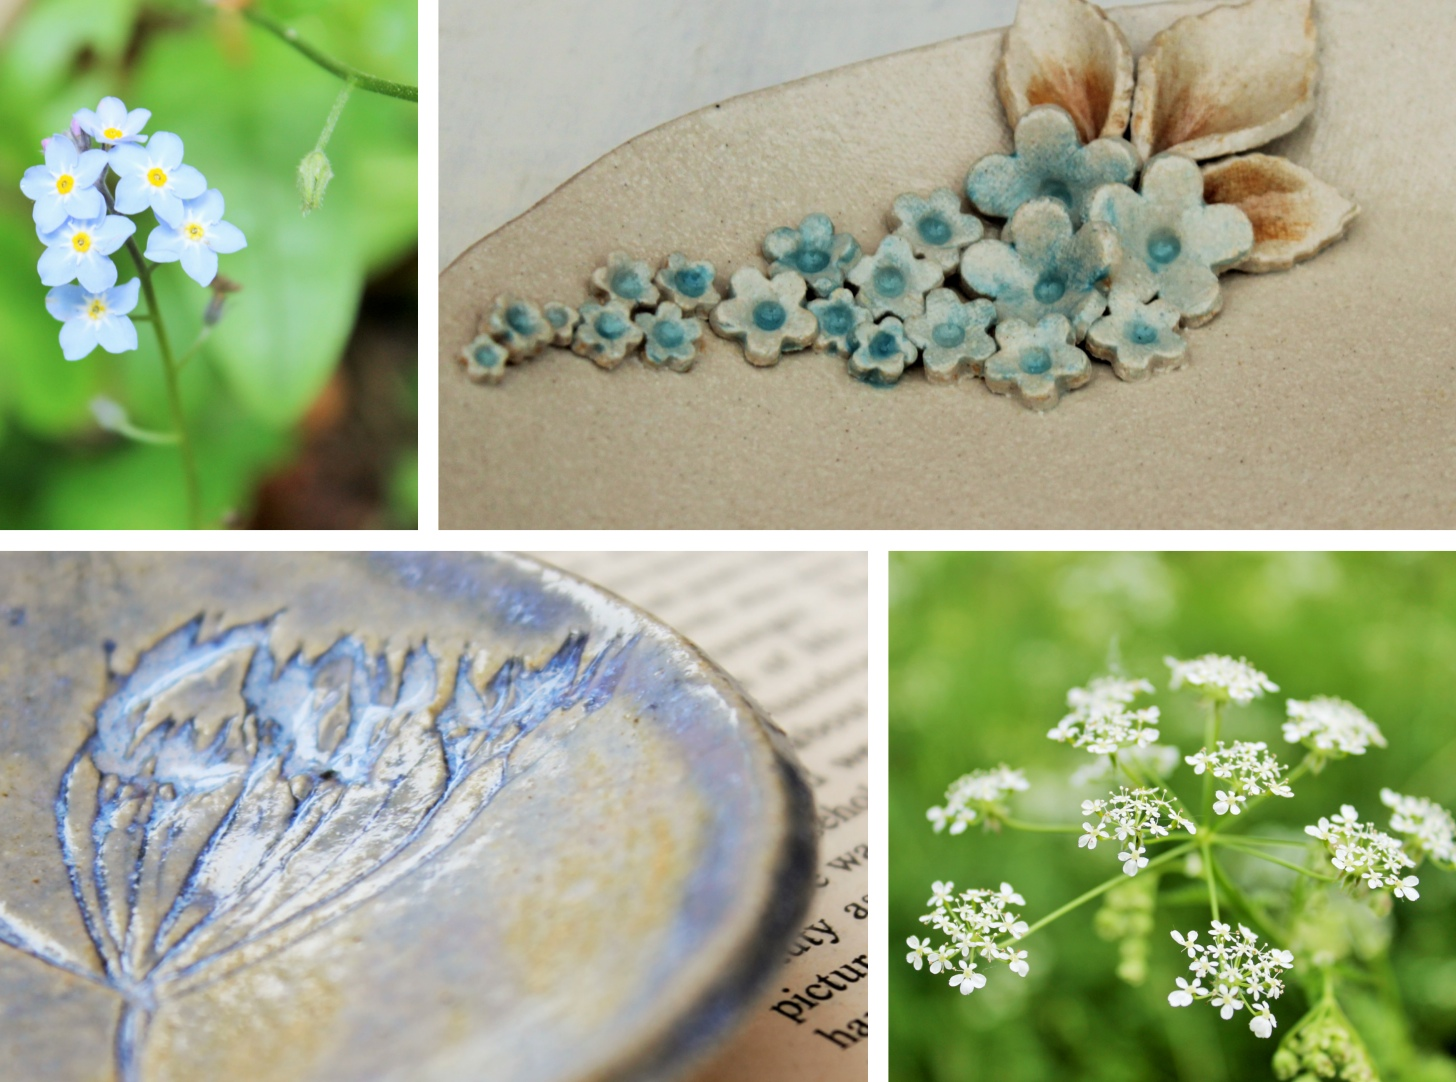 jessica catherine, ceramics, floral inspiration, cow parsley,